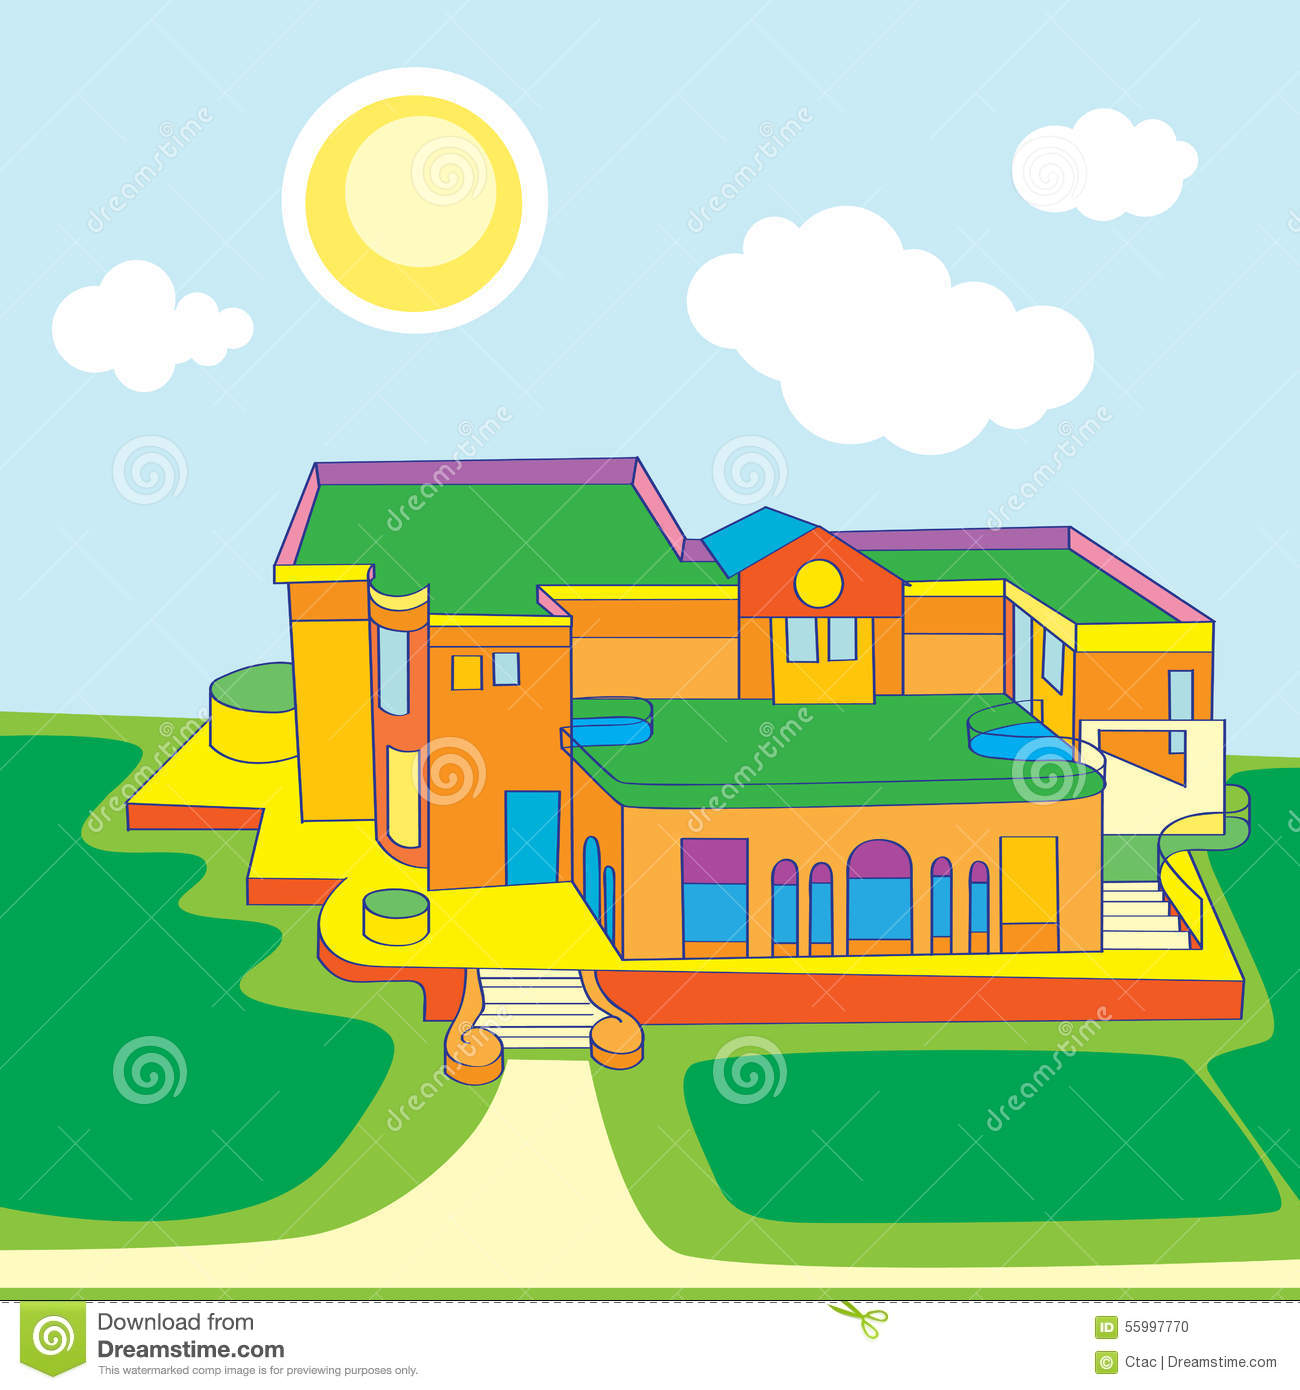 Architecture View Stock Vector Illustration Of Architectural 55997770